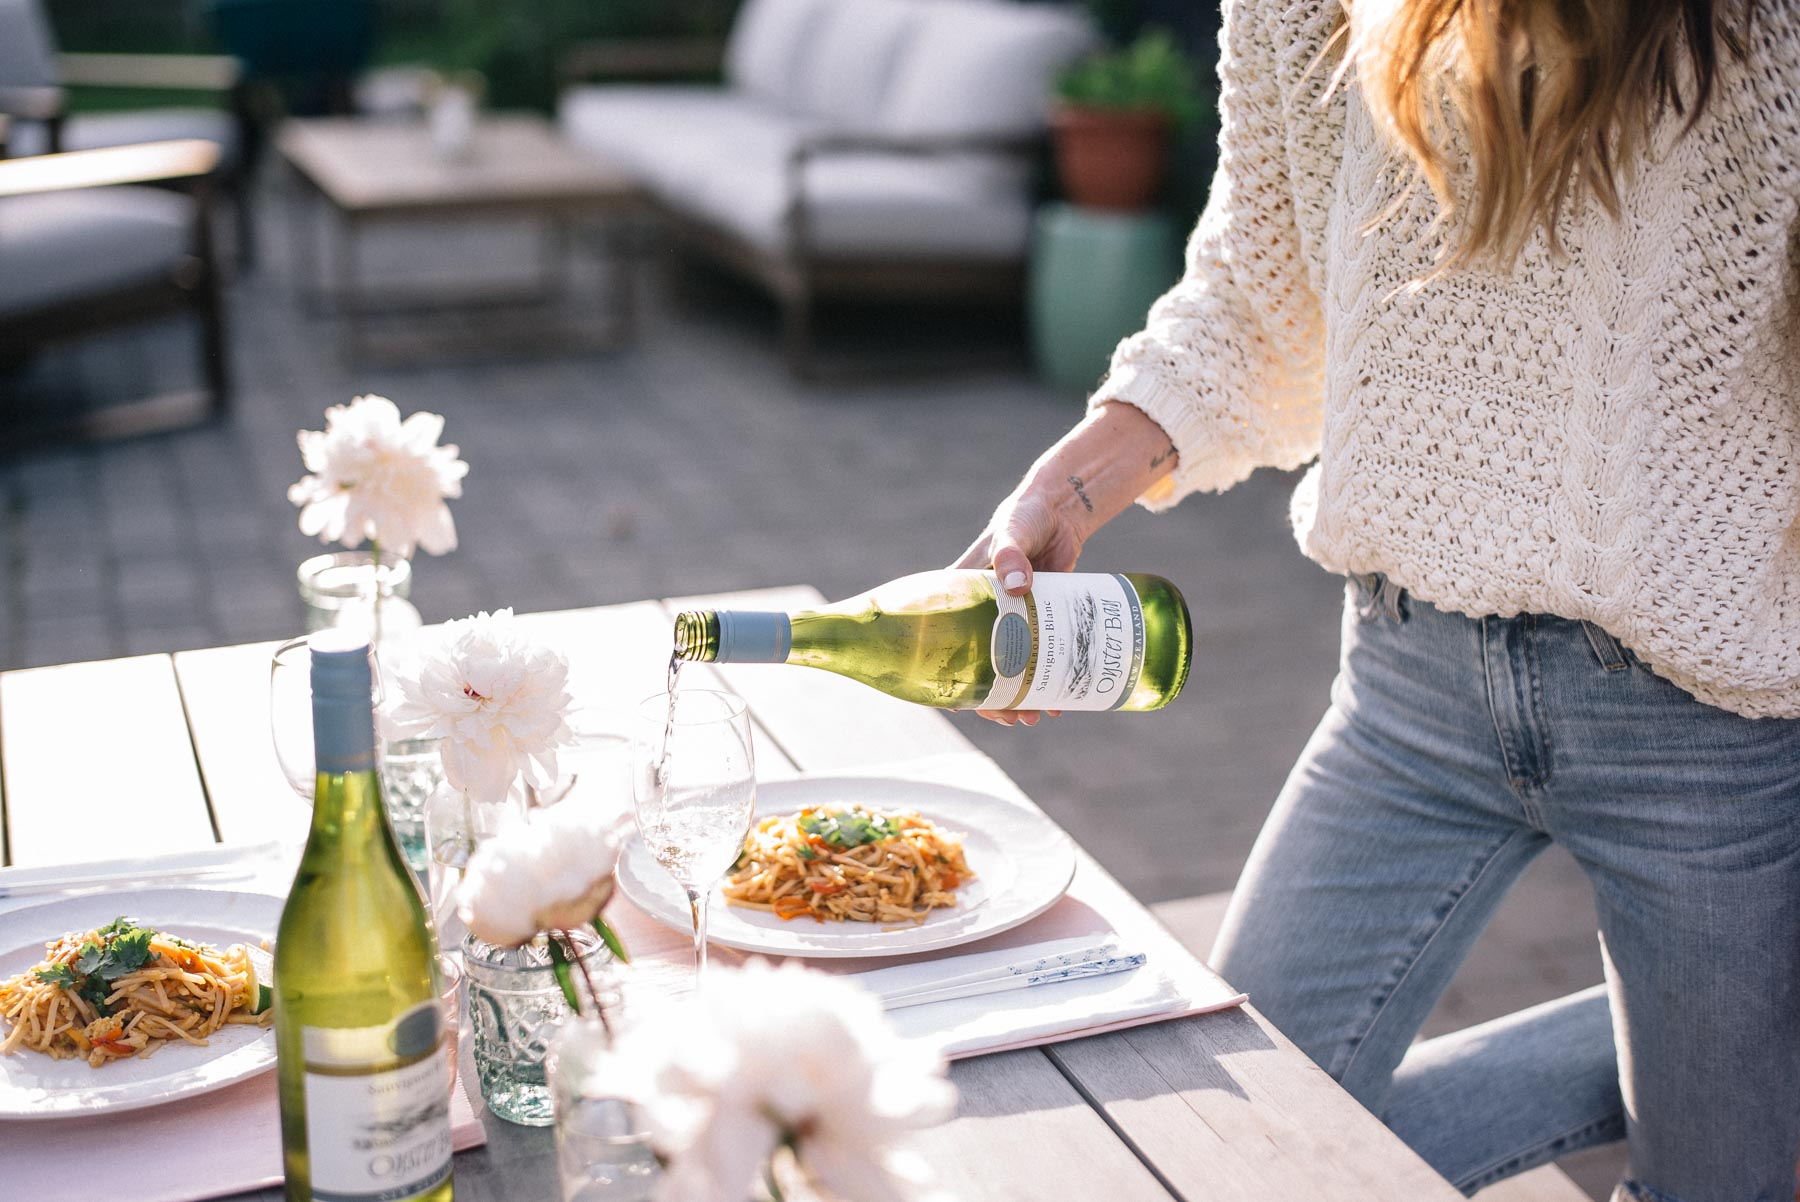 Jess Ann Kirby has a date night at home with pad thai and Oyster Bay wine